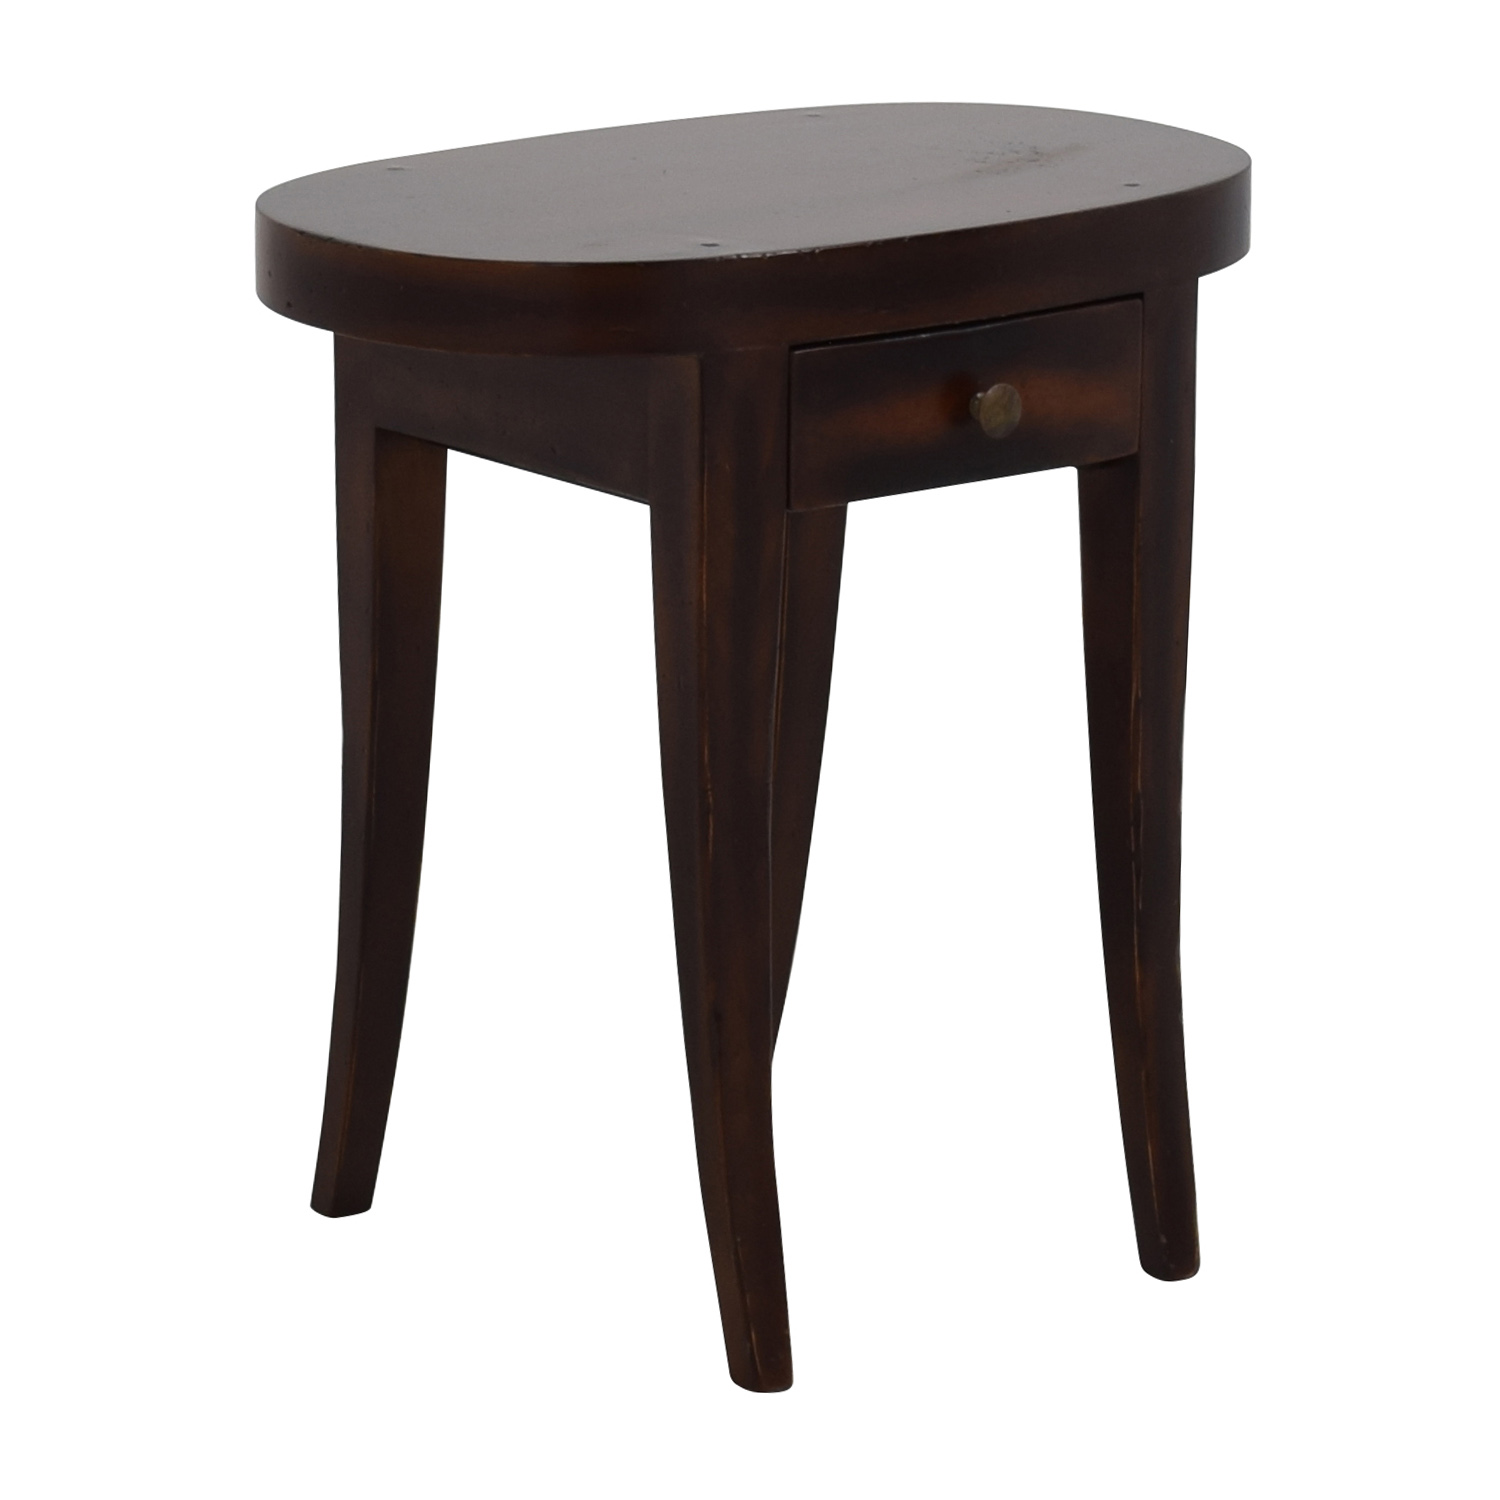 83 off oval dark wood side table with one drawer tables for Black wood side table